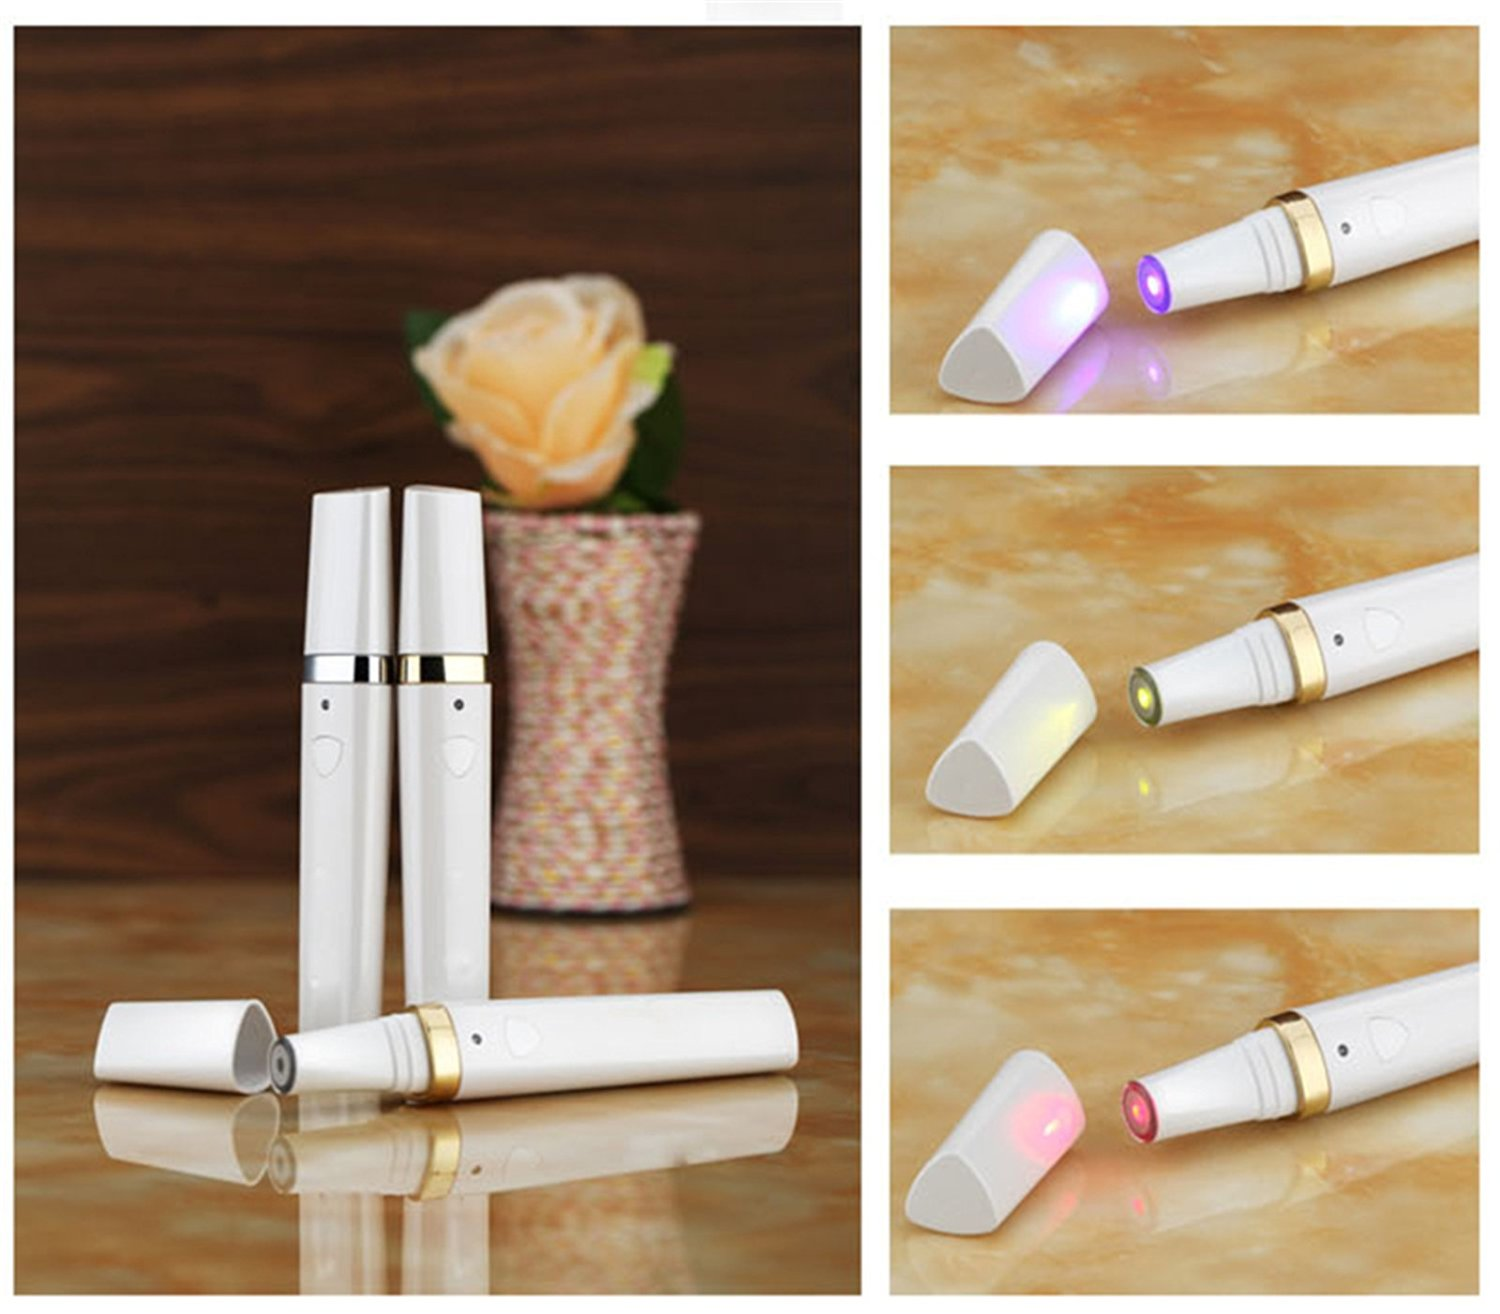 Denshine® Face Acne Removing Pen Light Magic Wand Beauty Device